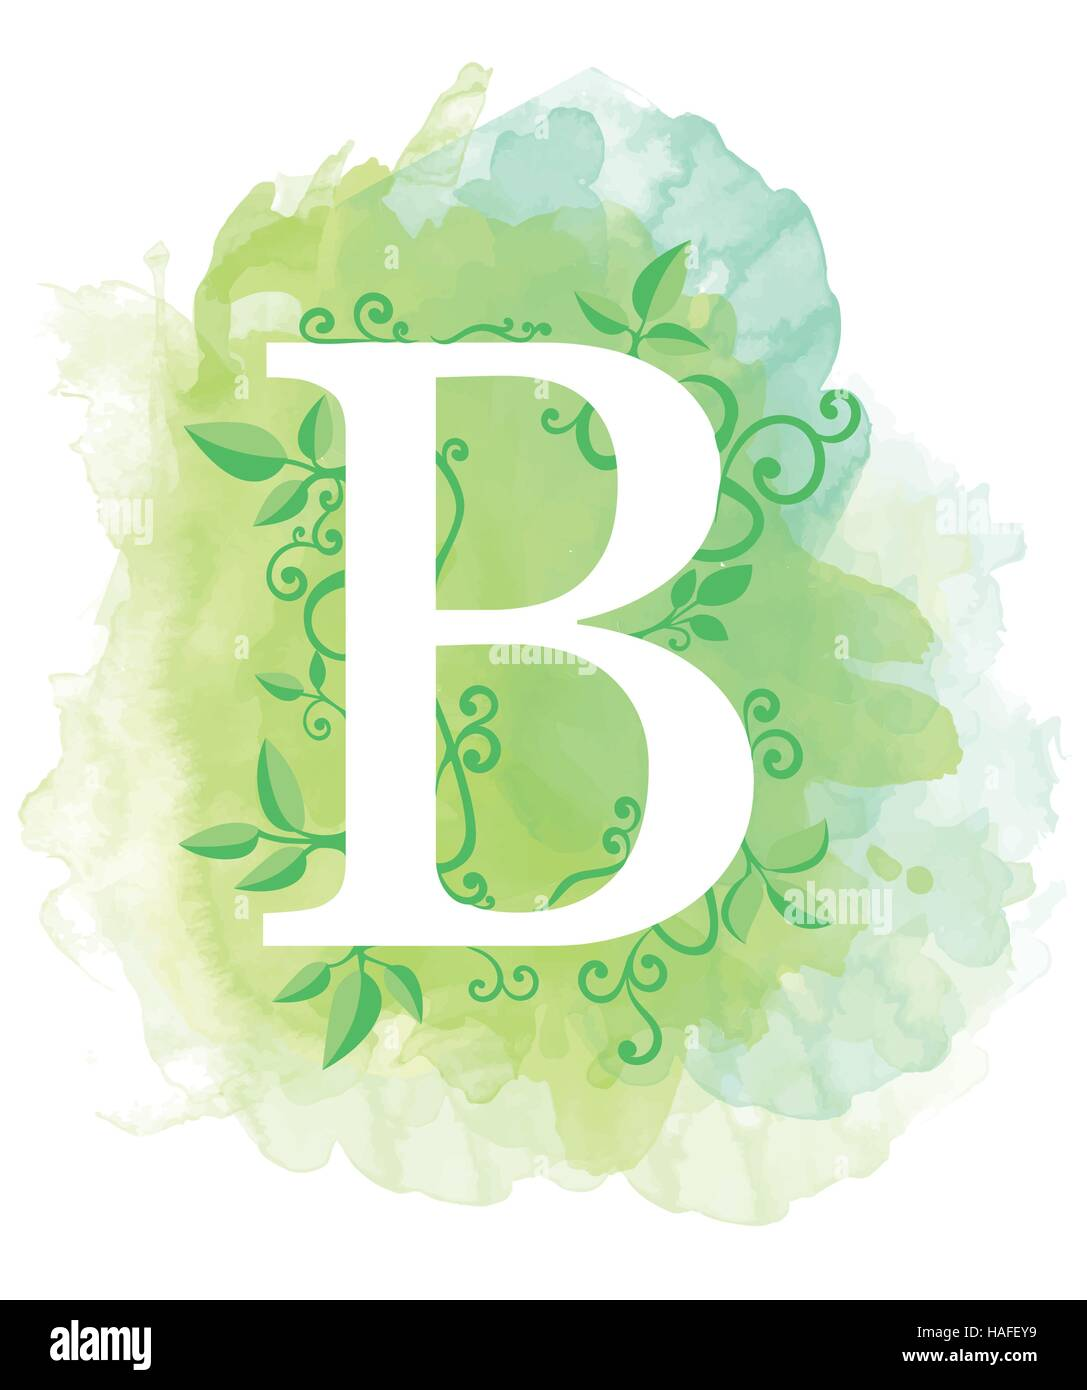 Watercolor Letter Calligraphy On Background Natural Elements Leaves Curls Design An Element For Web Poster Typographics